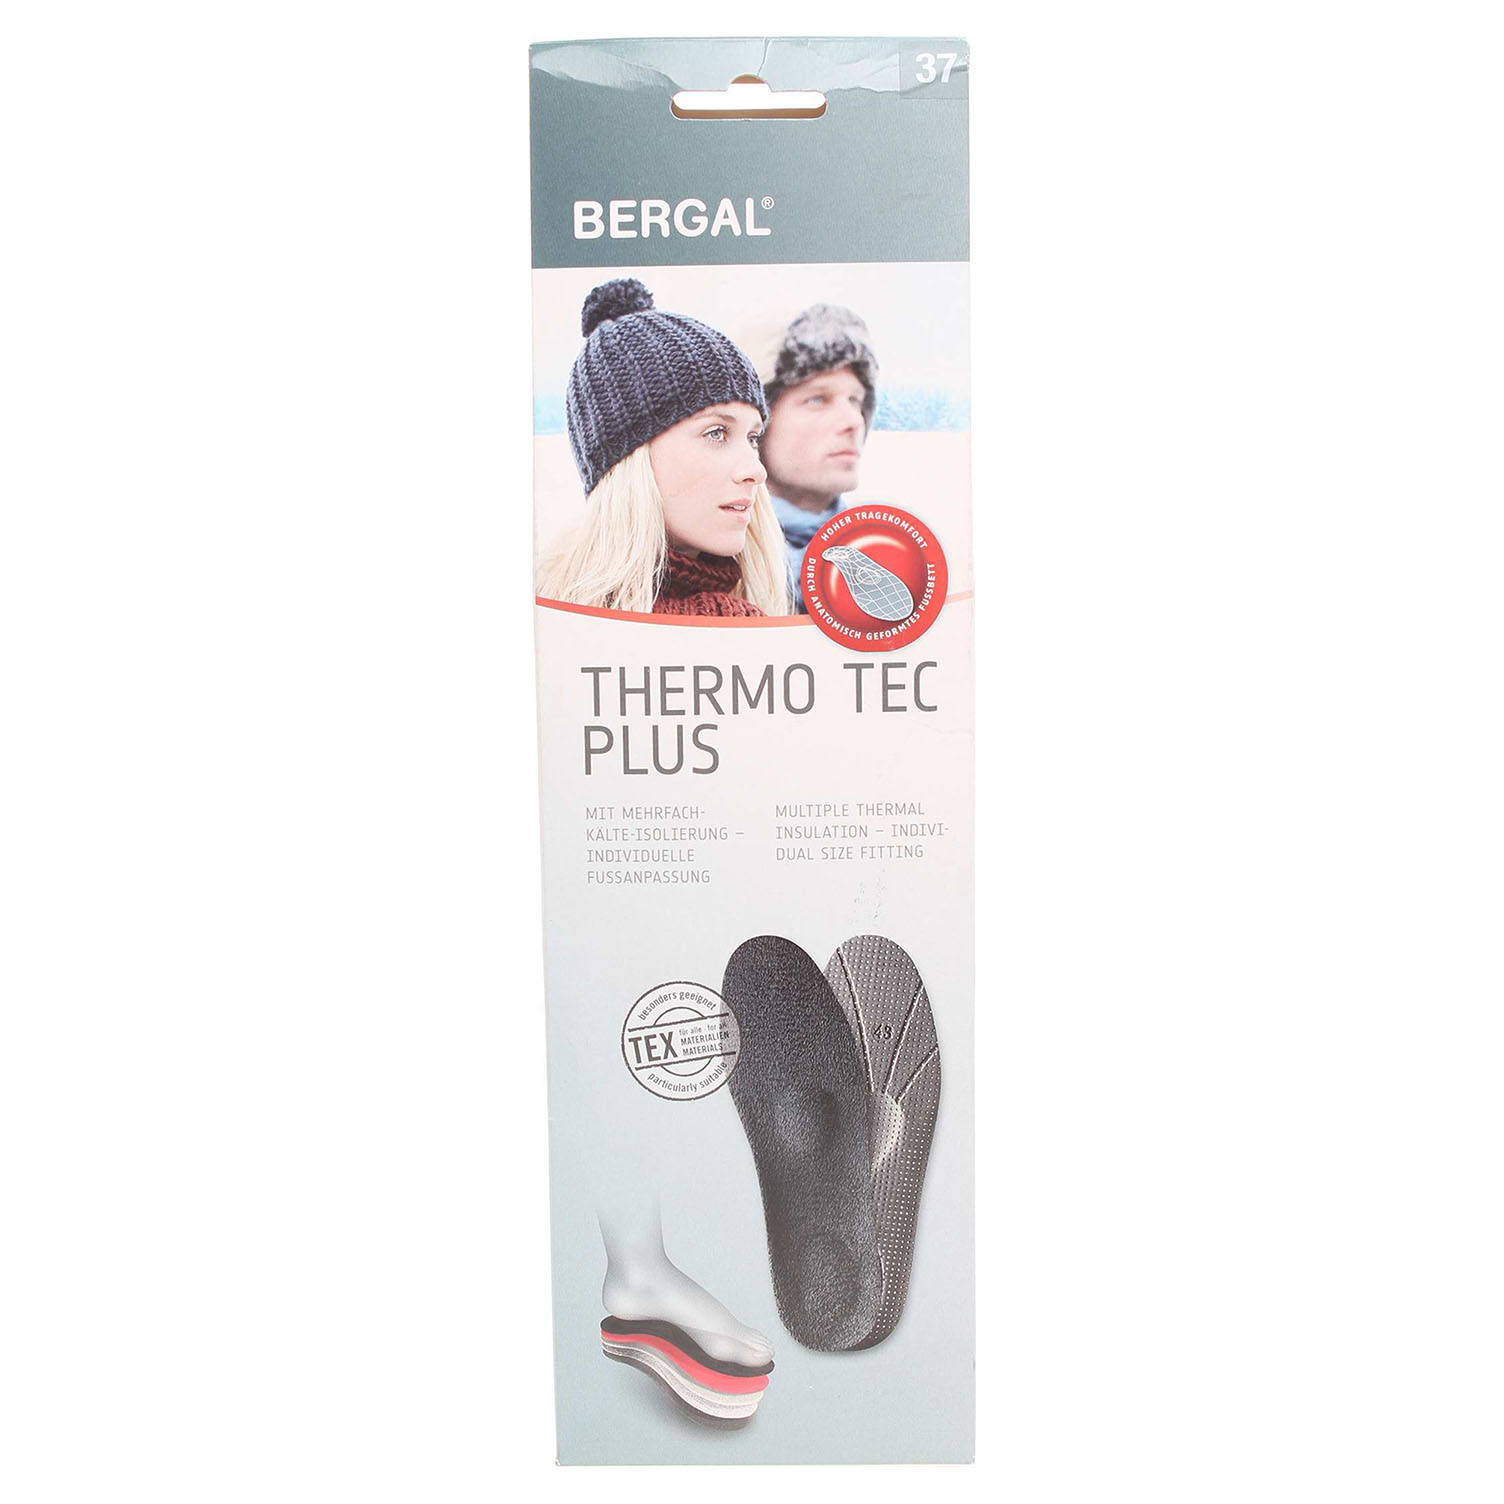 Stélky Thermo Tec Plus